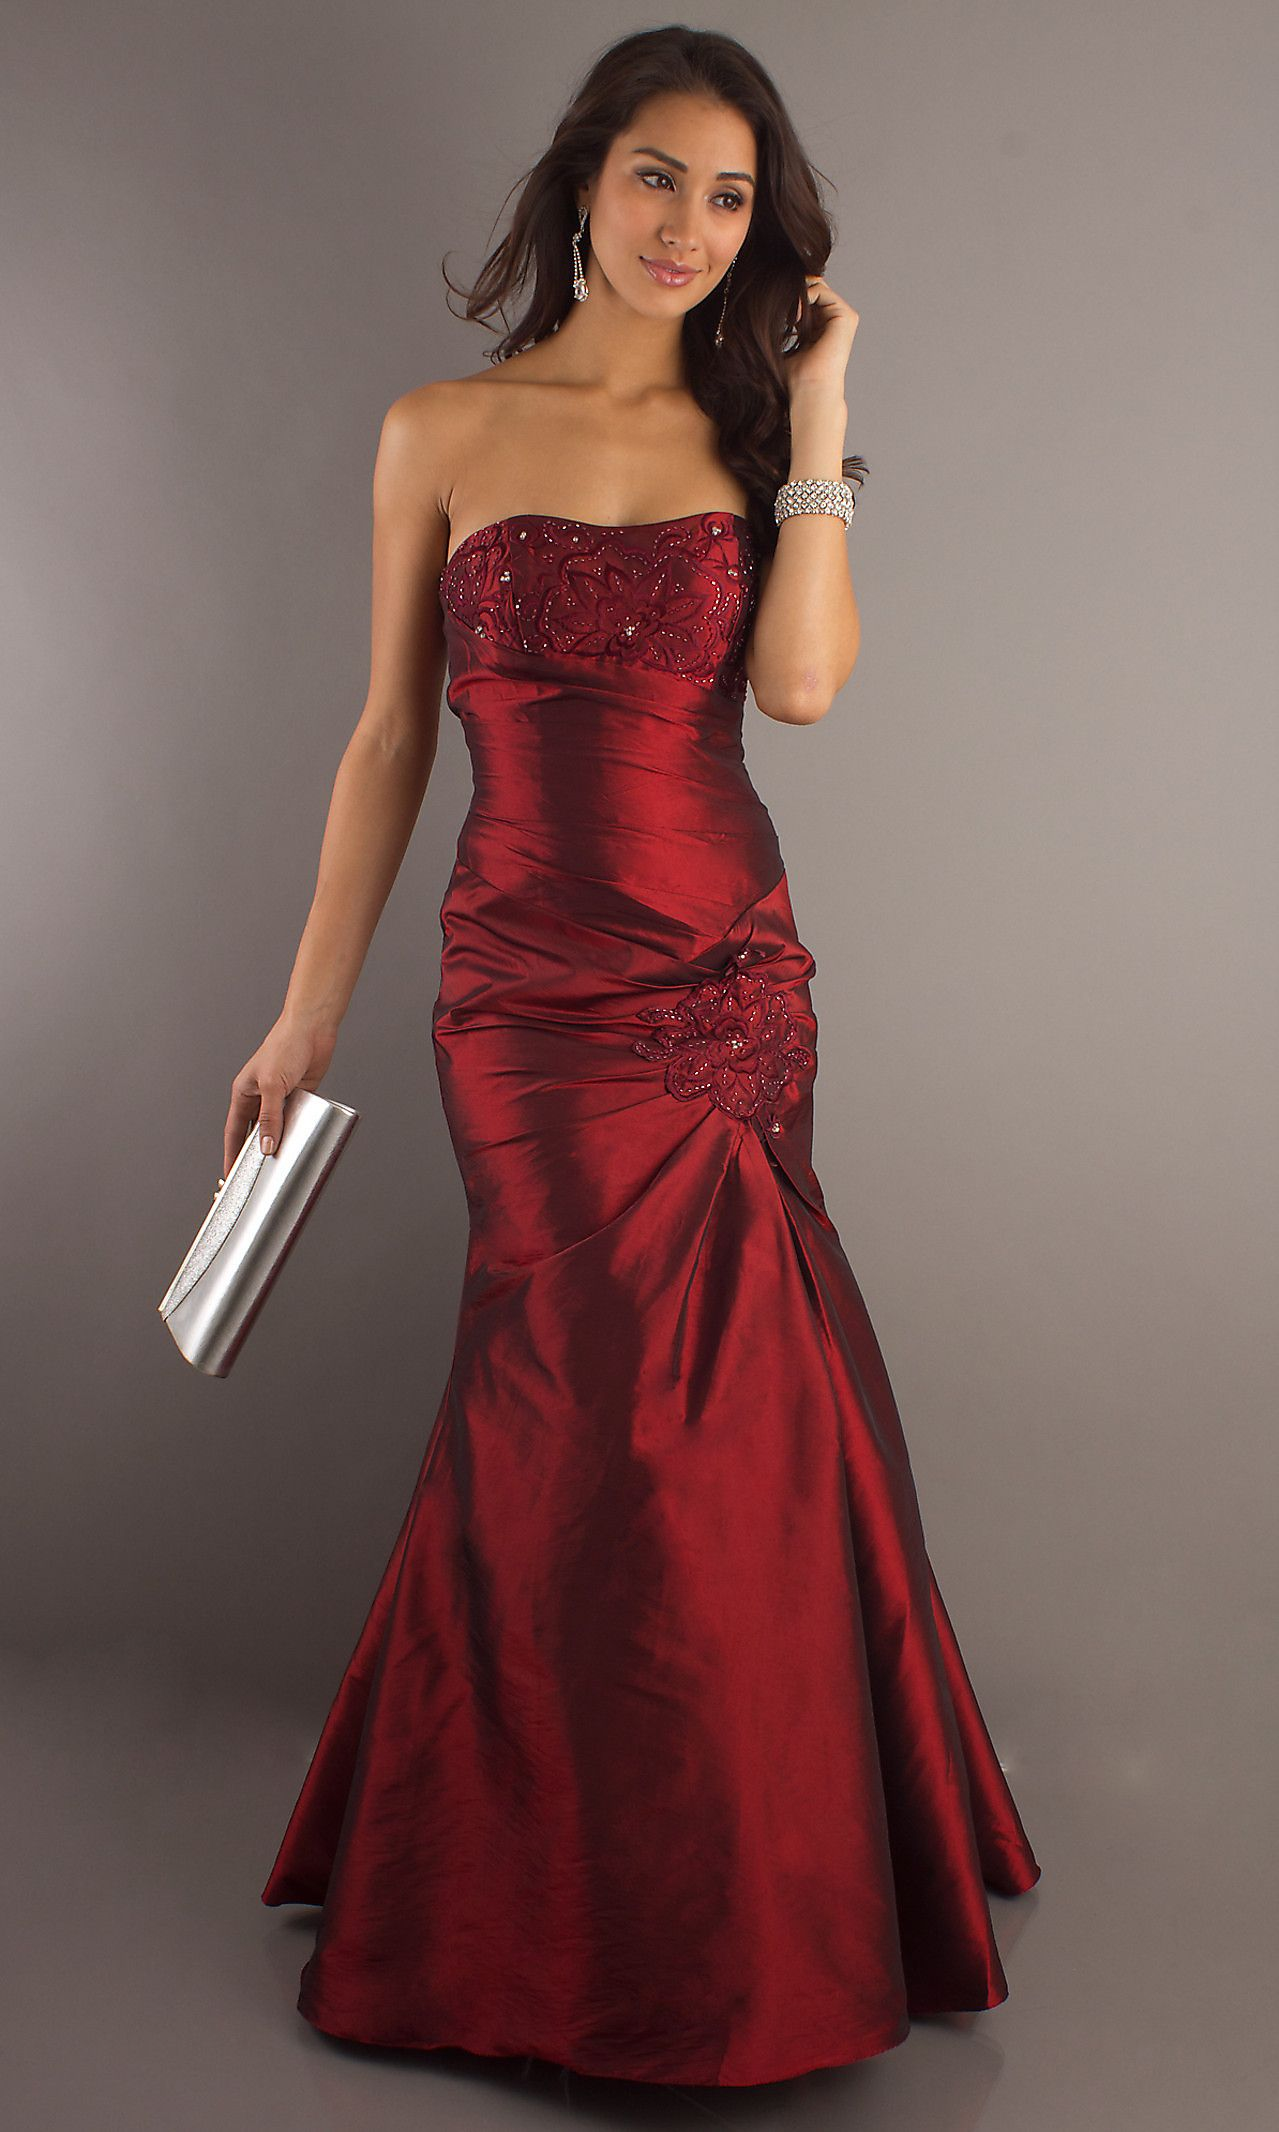 STRAPLESS FORMAL DRESS FOR PROM BY SALLY FASHIONS 29283 Be red ...